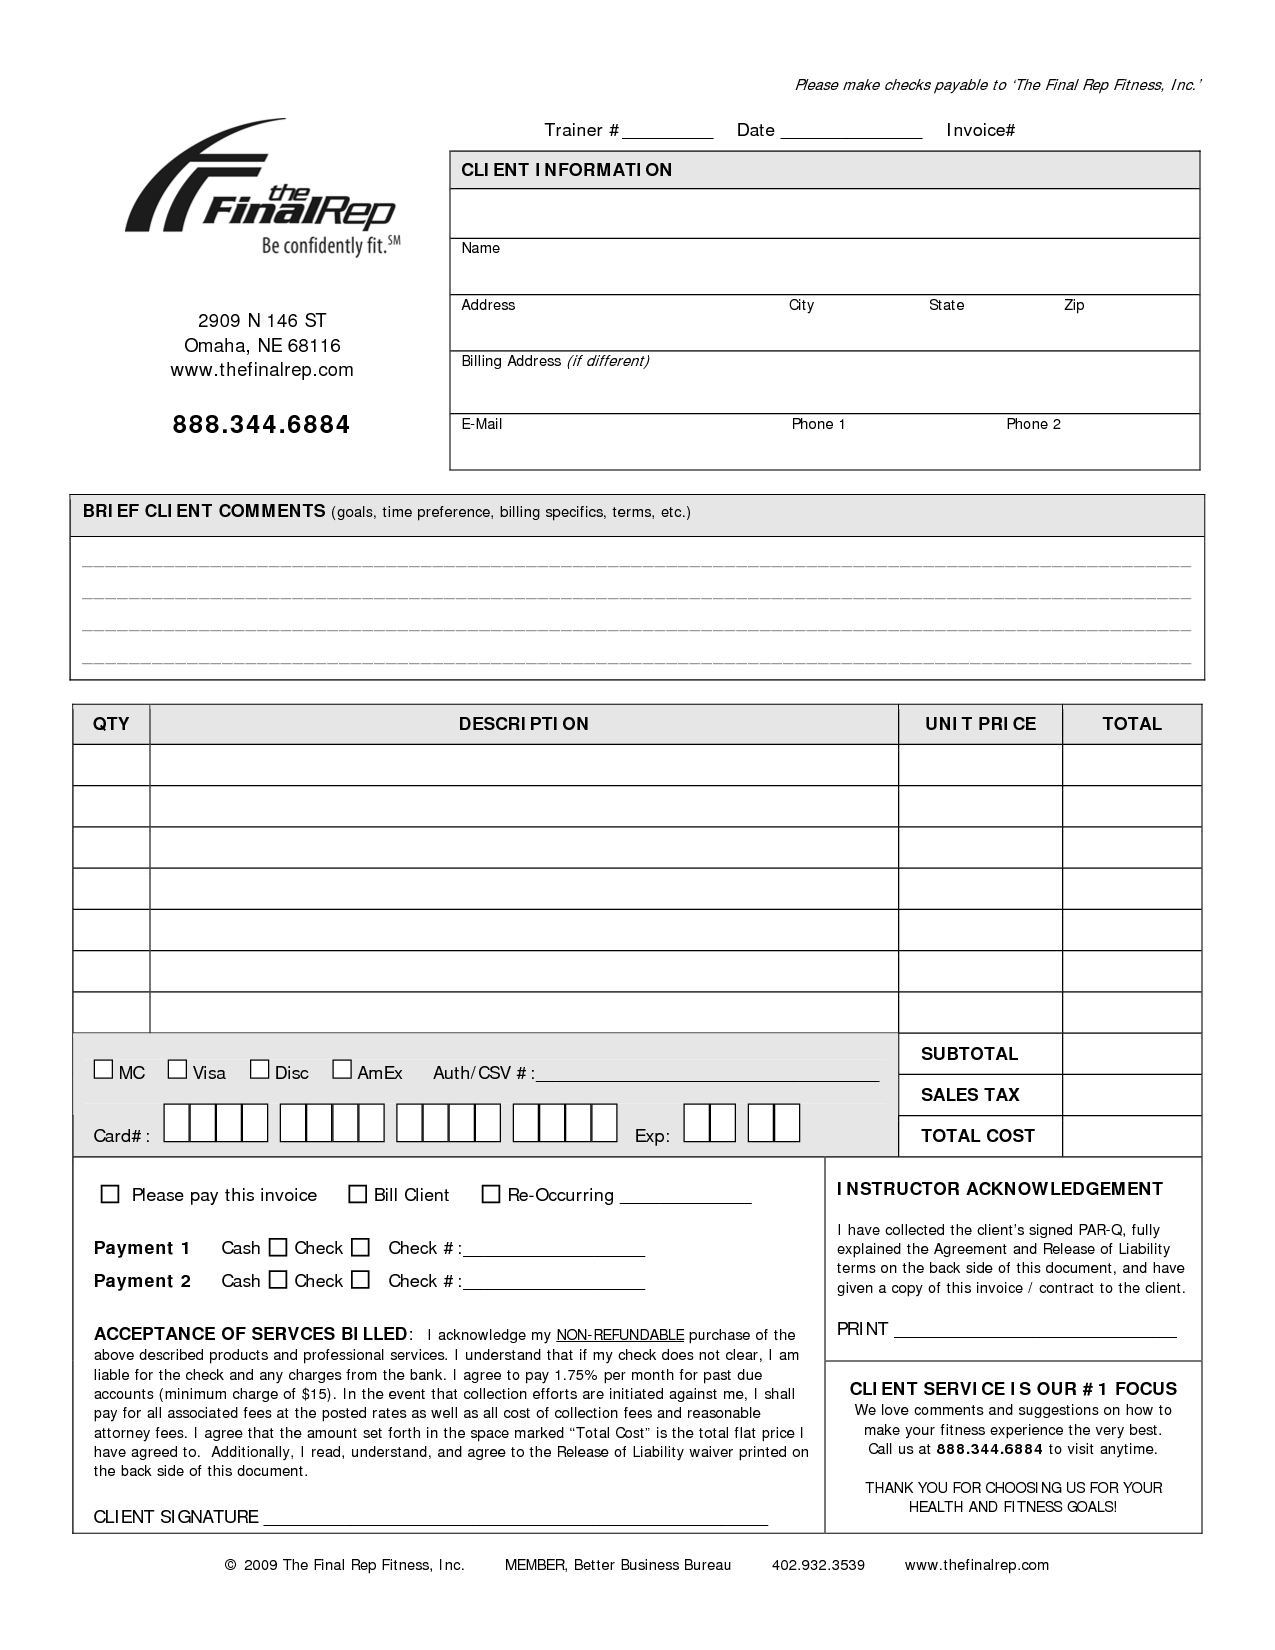 training invoice template invoice template 2017 personal invoice template